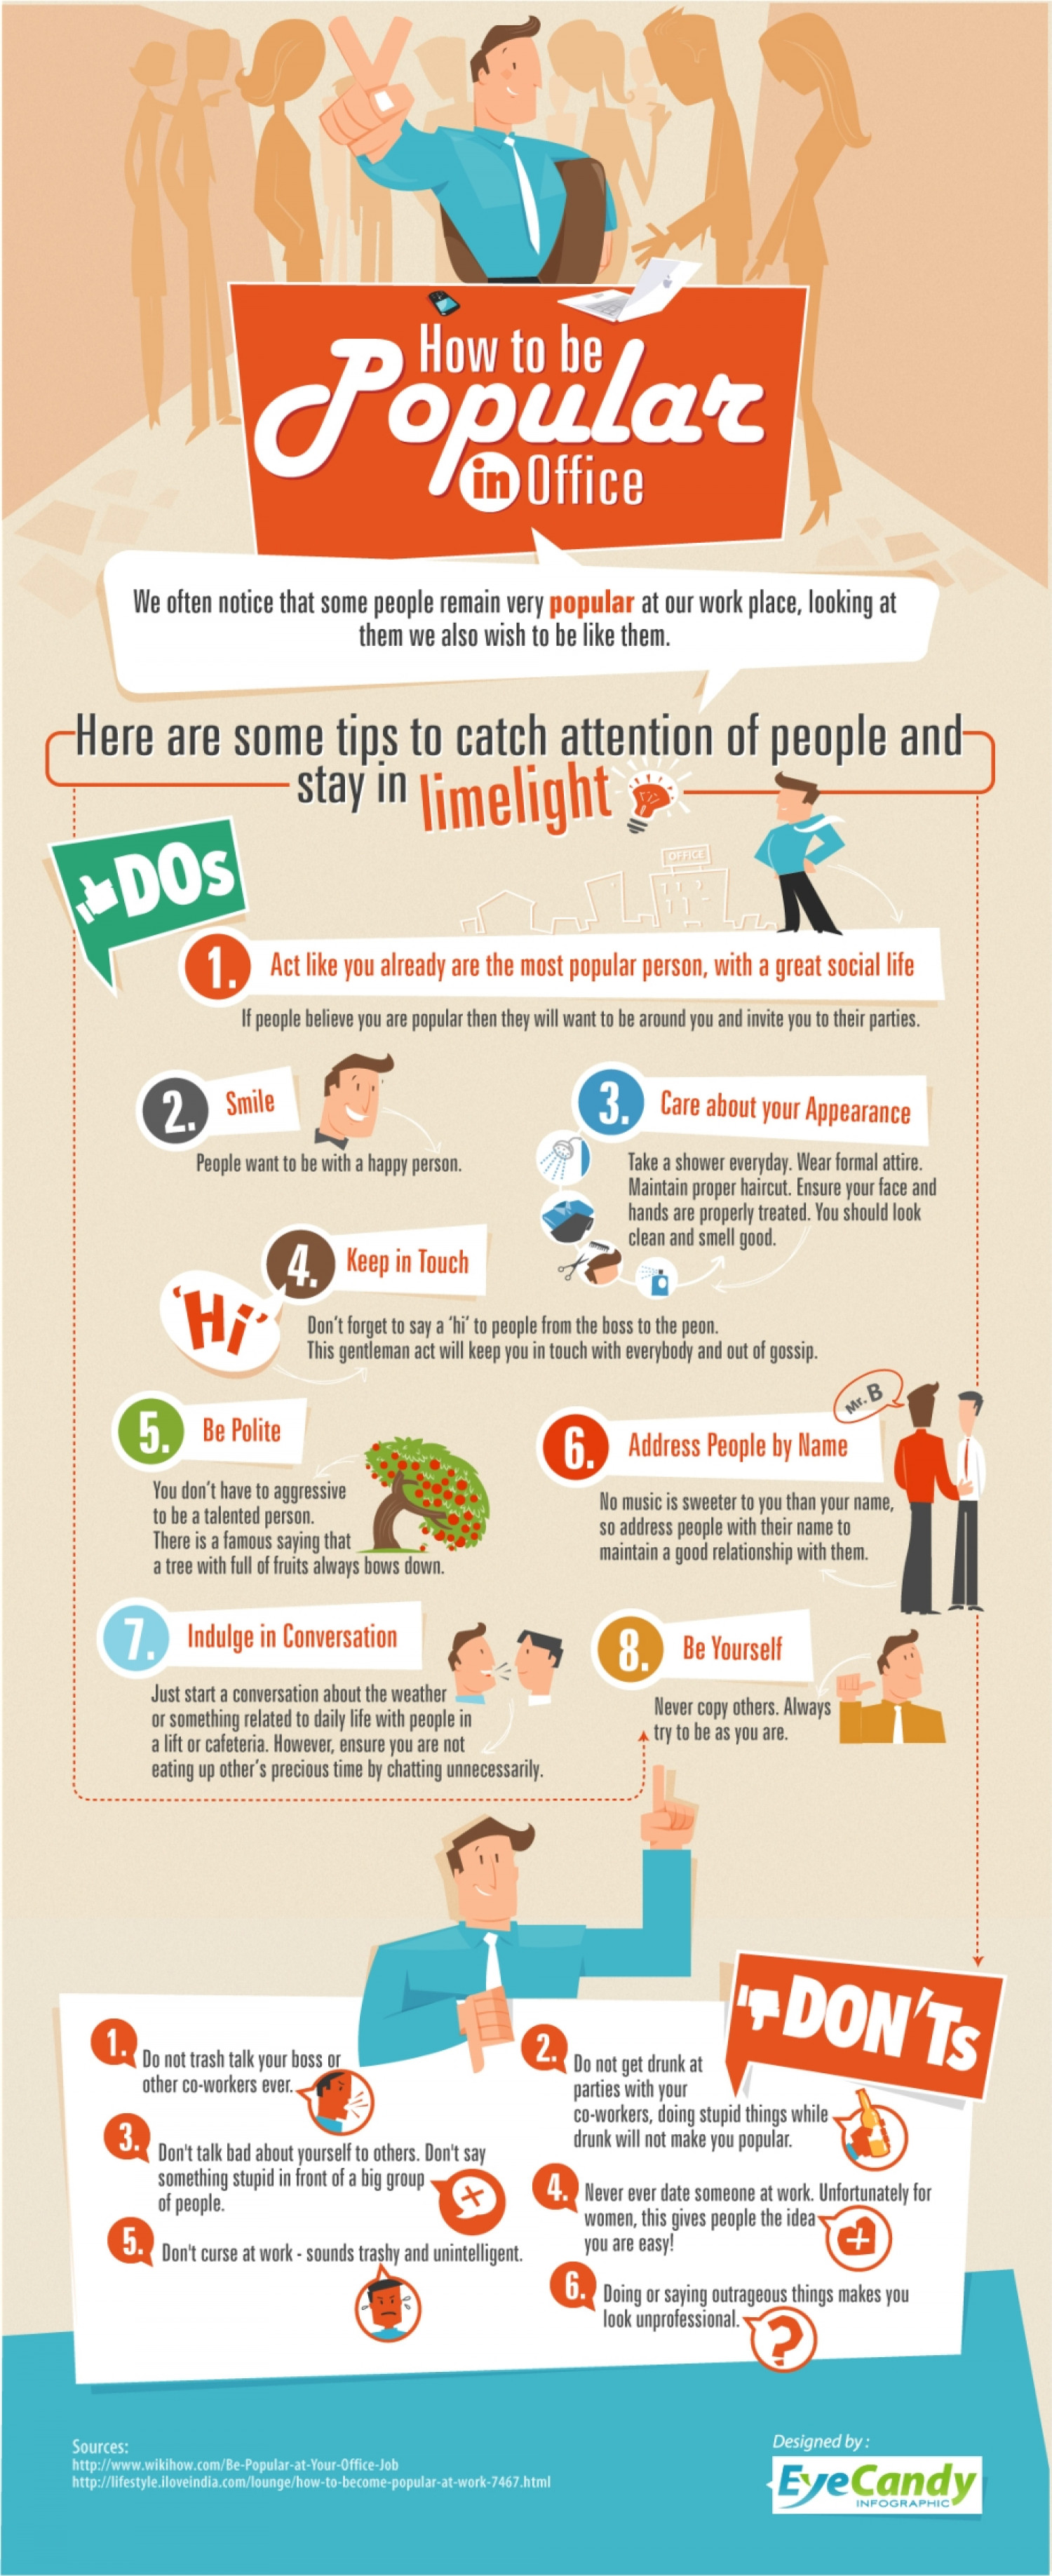 How to be Popular in Office Infographic